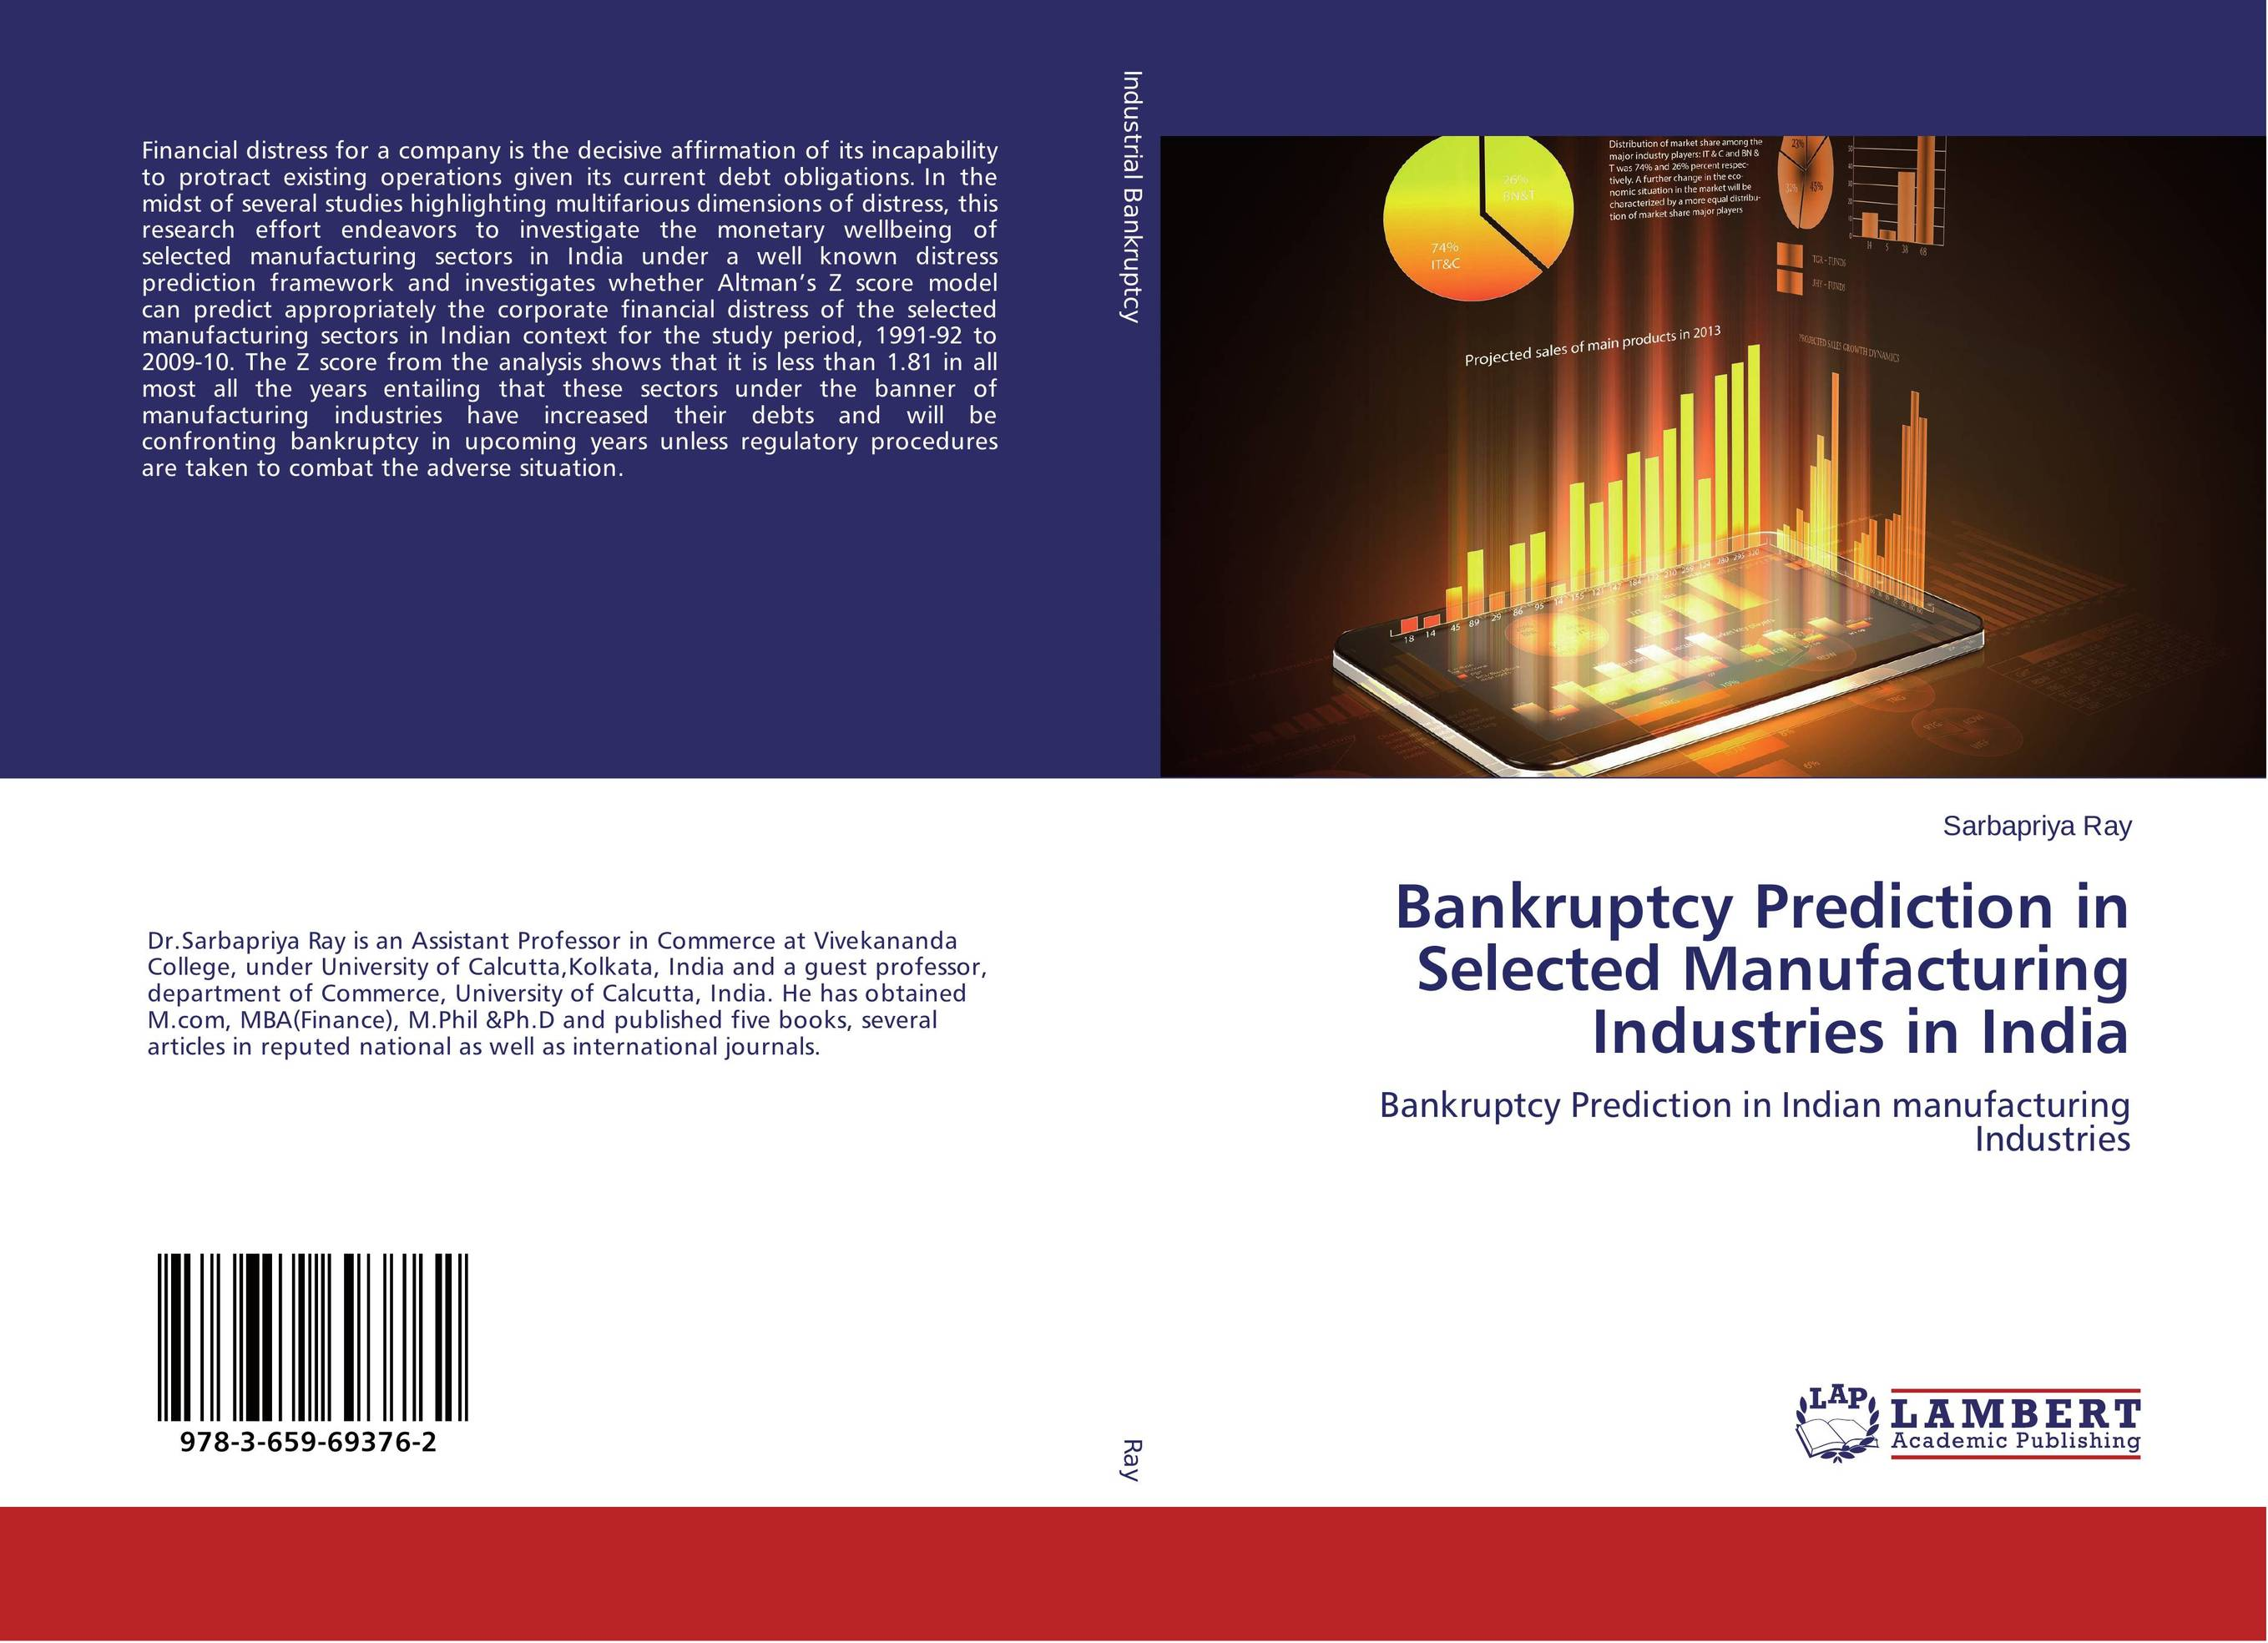 Bankruptcy Prediction in Selected Manufacturing Industries in India damsel in distress